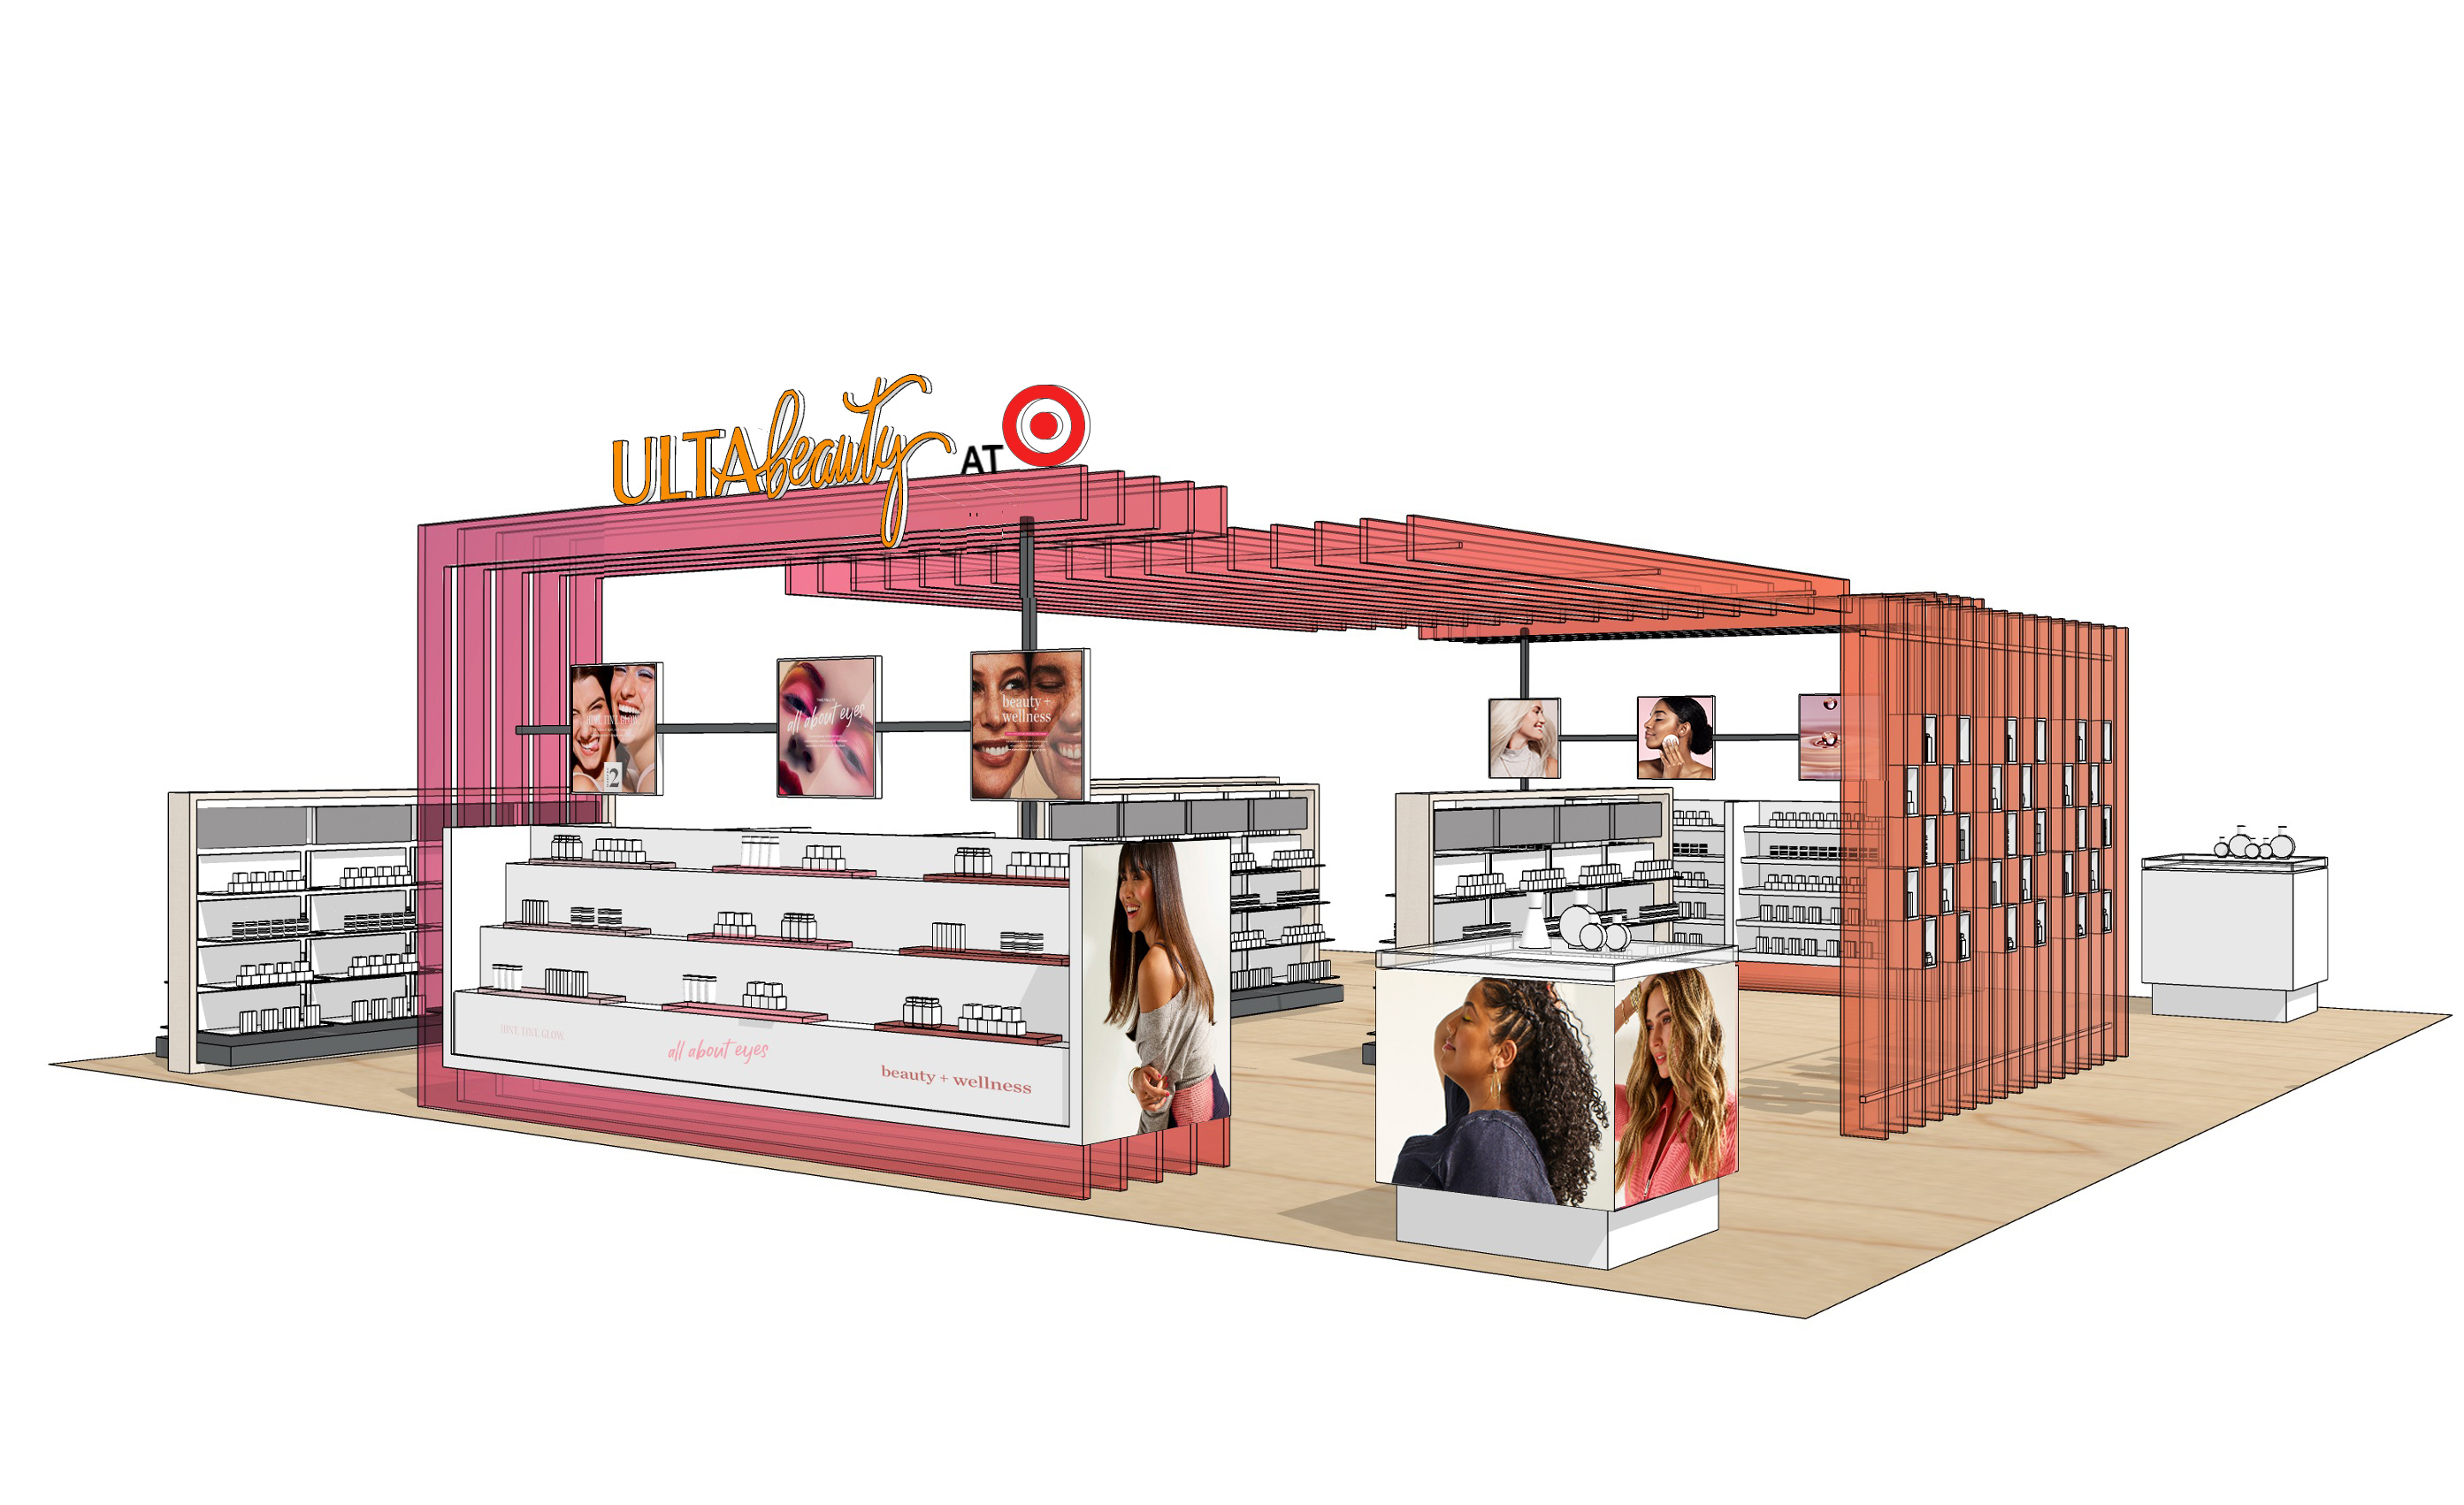 A rendering of Ulta Beauty at Target